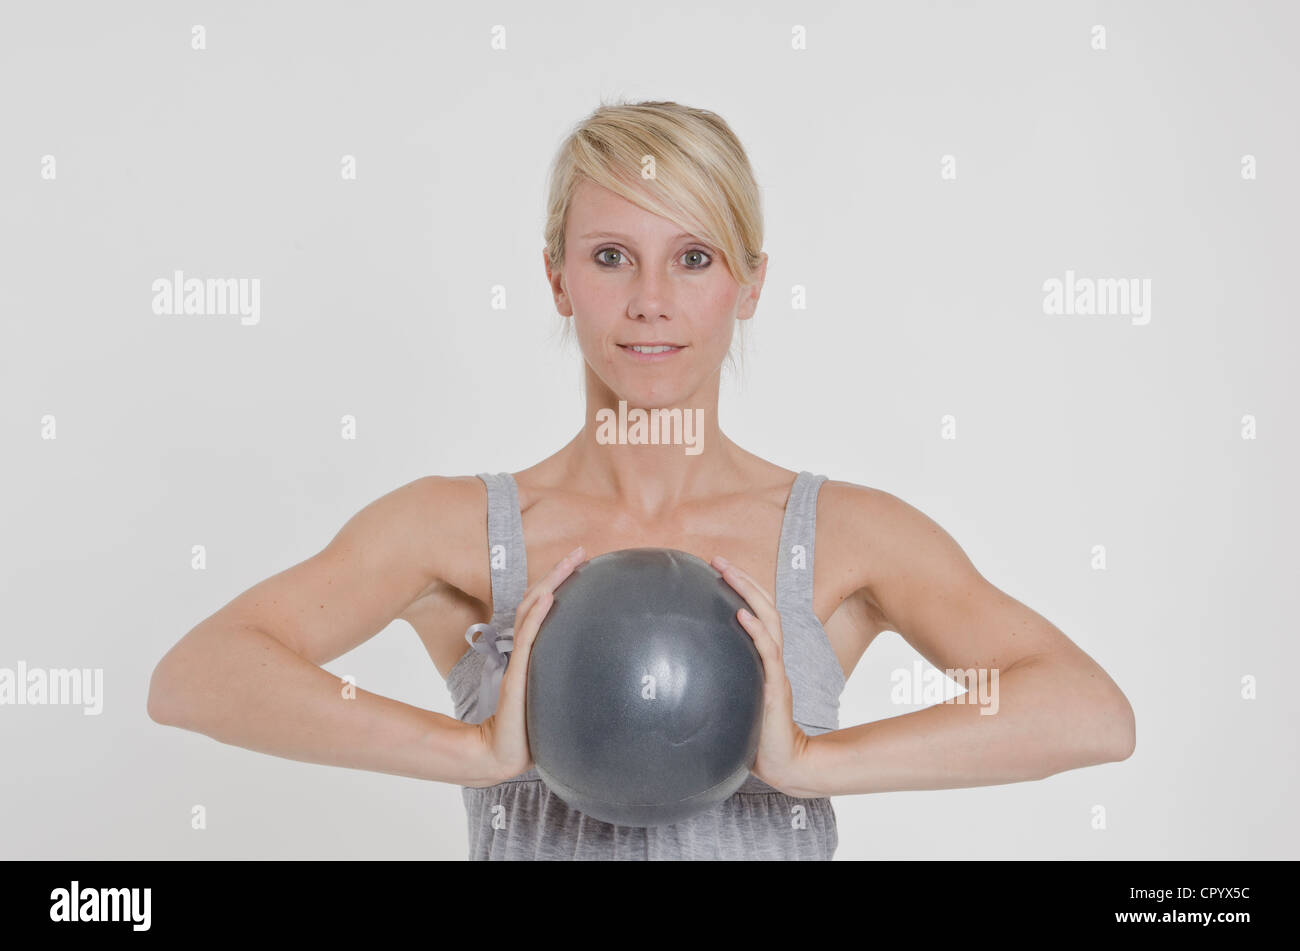 Young woman holding an exercise ball with both hands - Stock Image